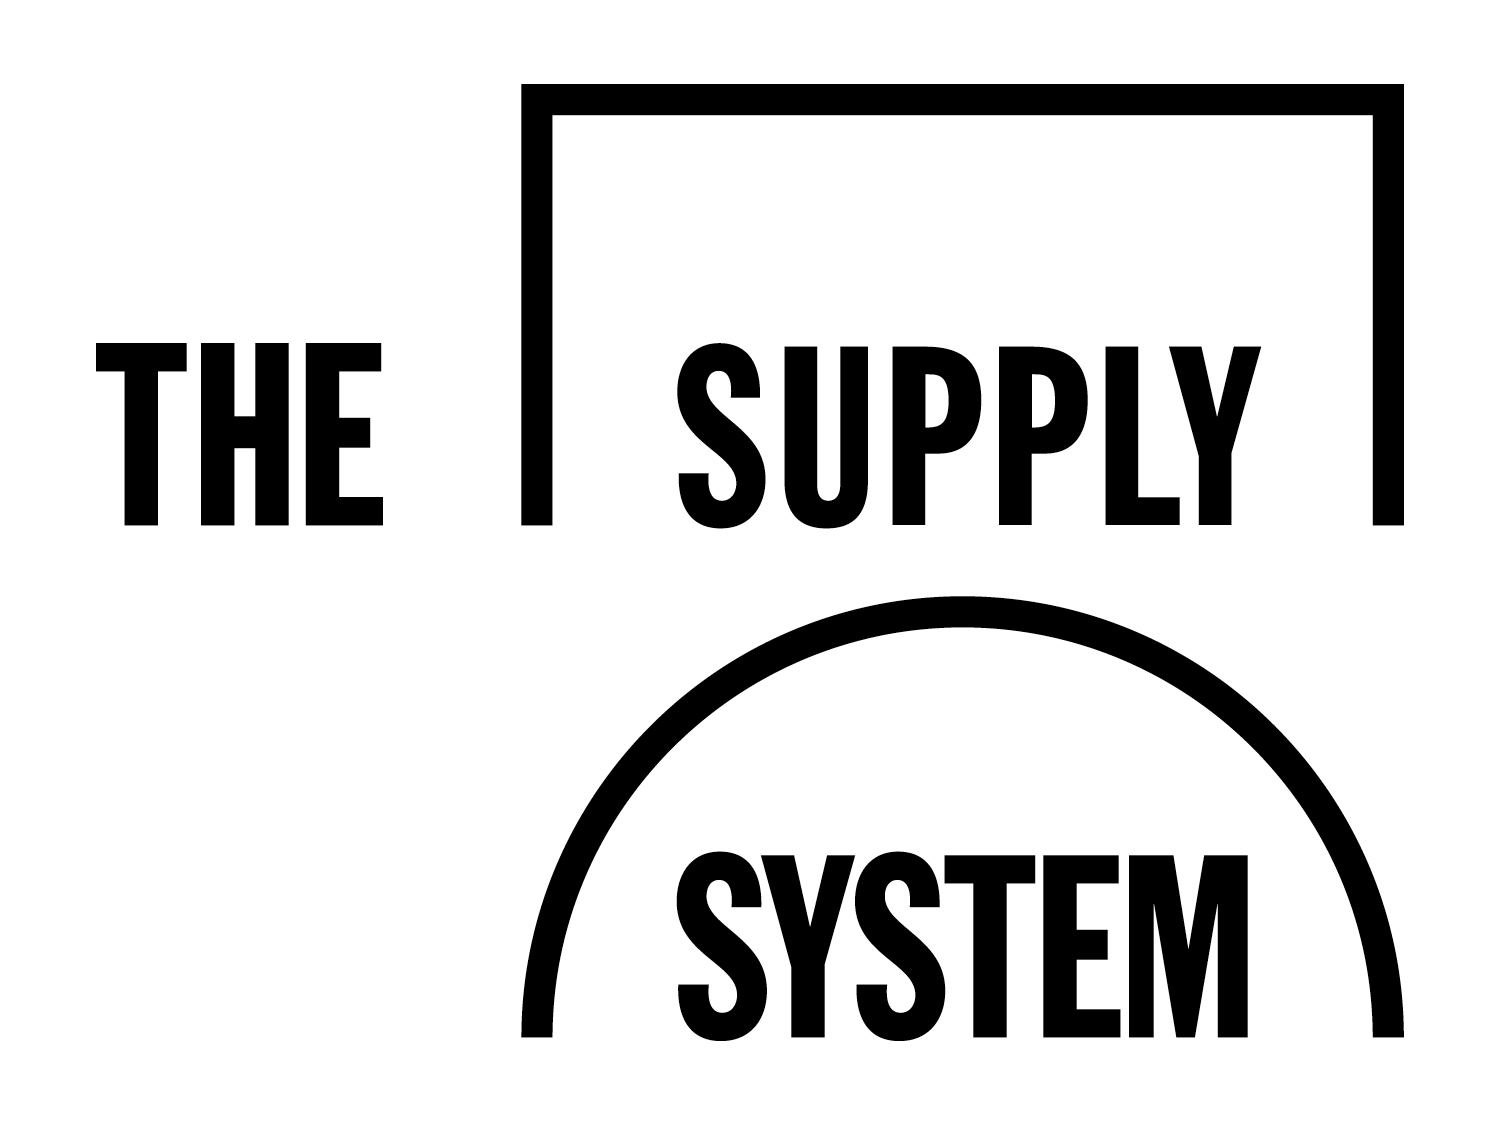 The Supply System